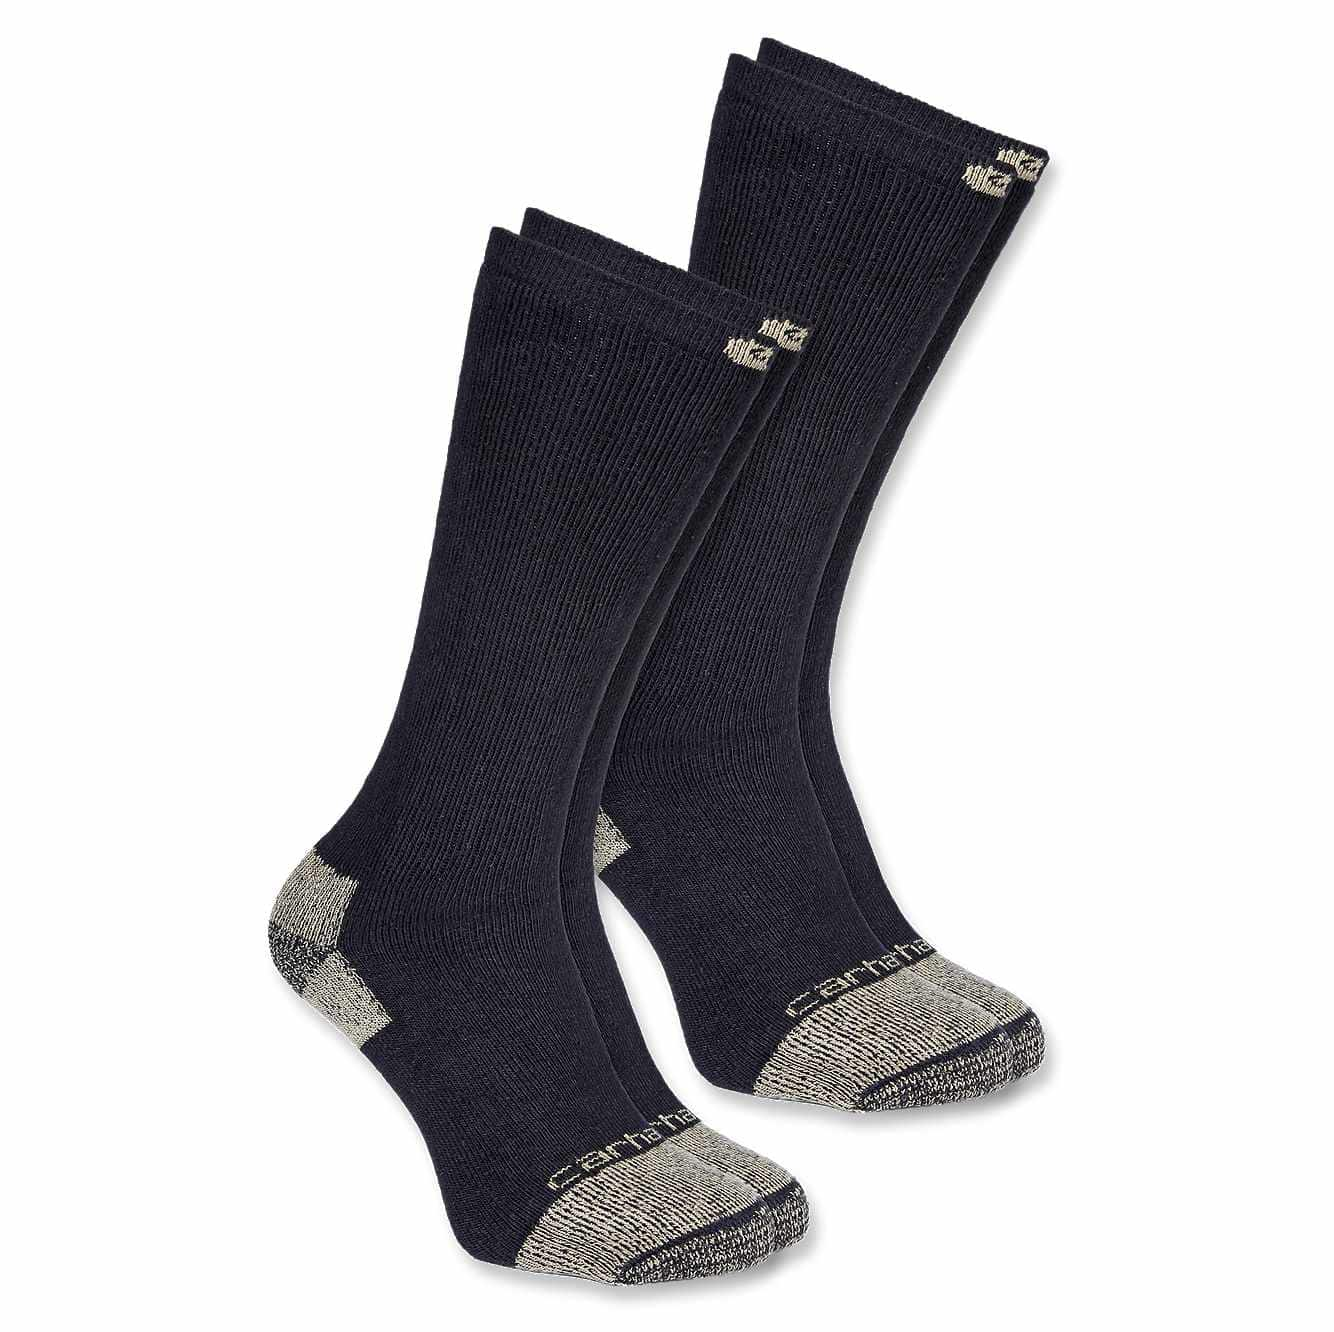 Picture of FULL CUSHIOIN STEEL-TOE COTTON RICH WORK BOOT SOCK